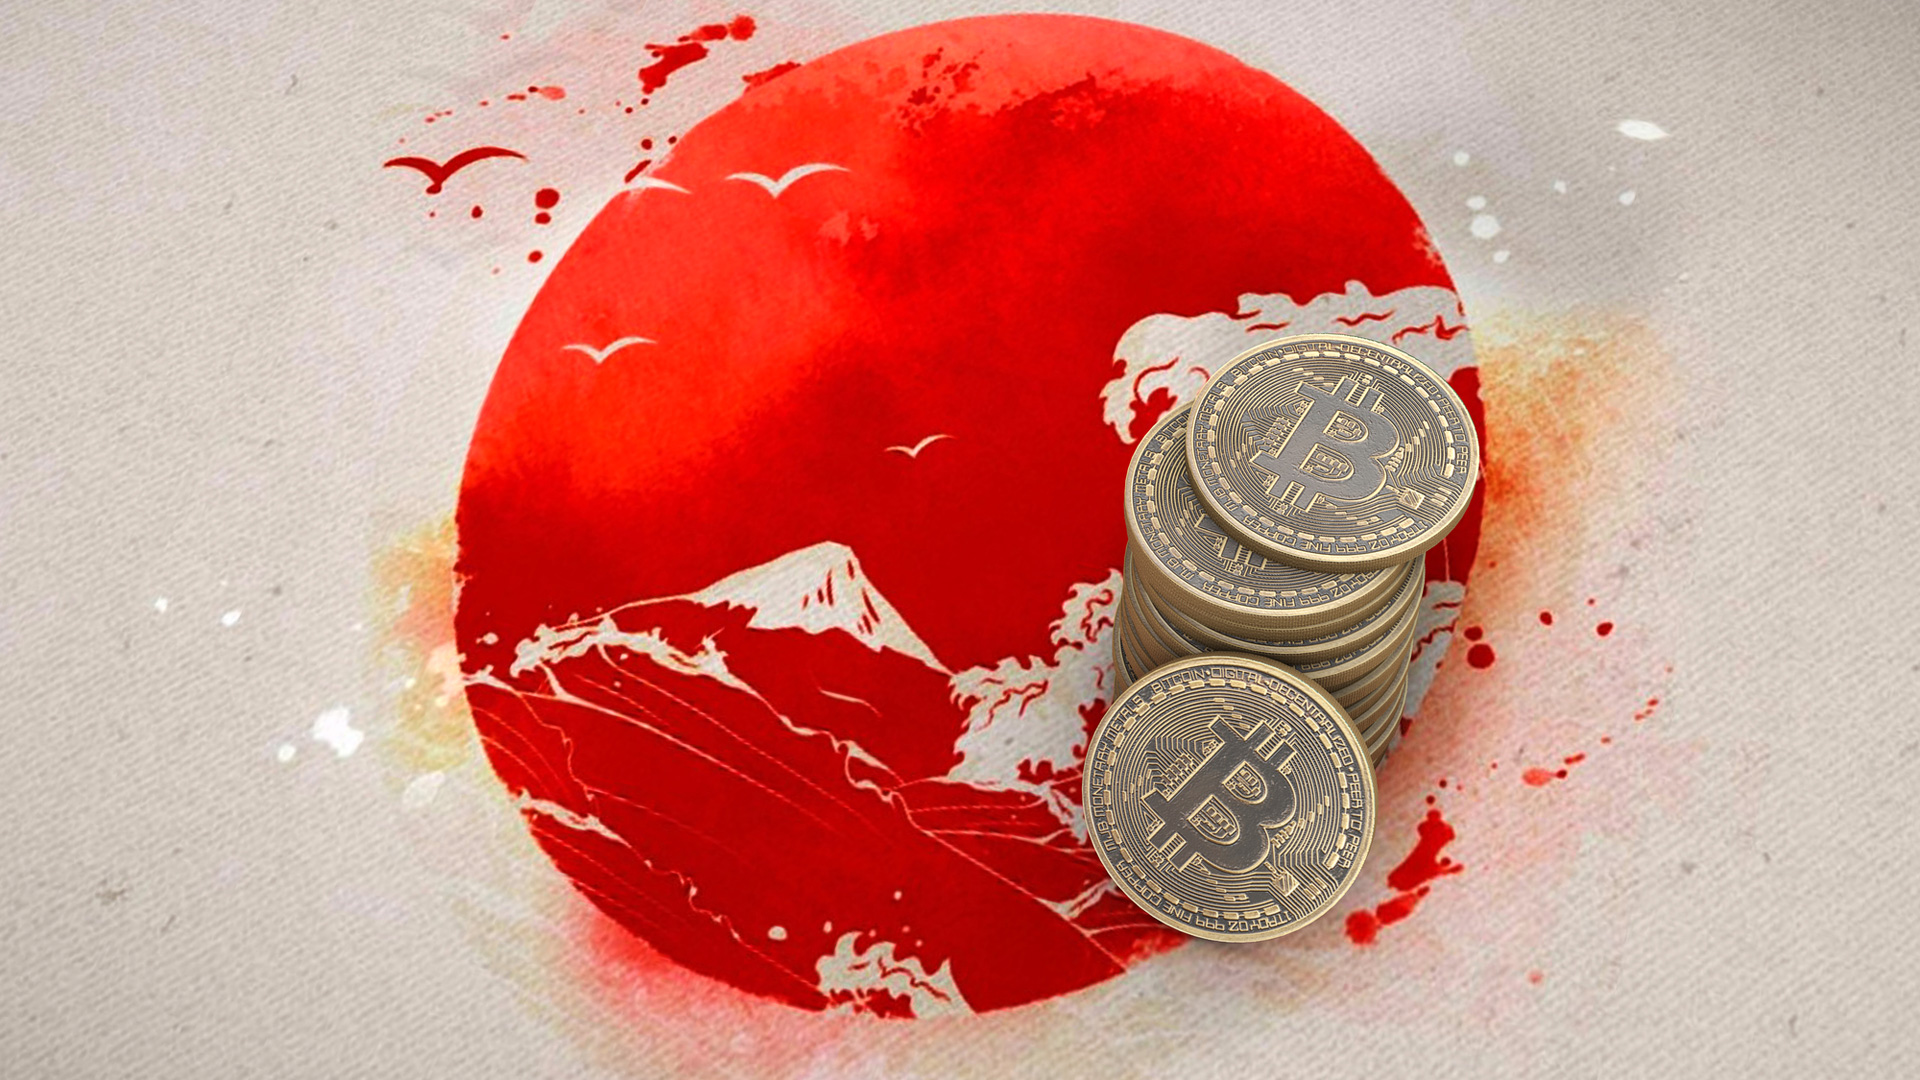 Bloomberg: Japan Gauges Interest in Bitcoin ETF as Pundits Talk Down US Approval Rumors